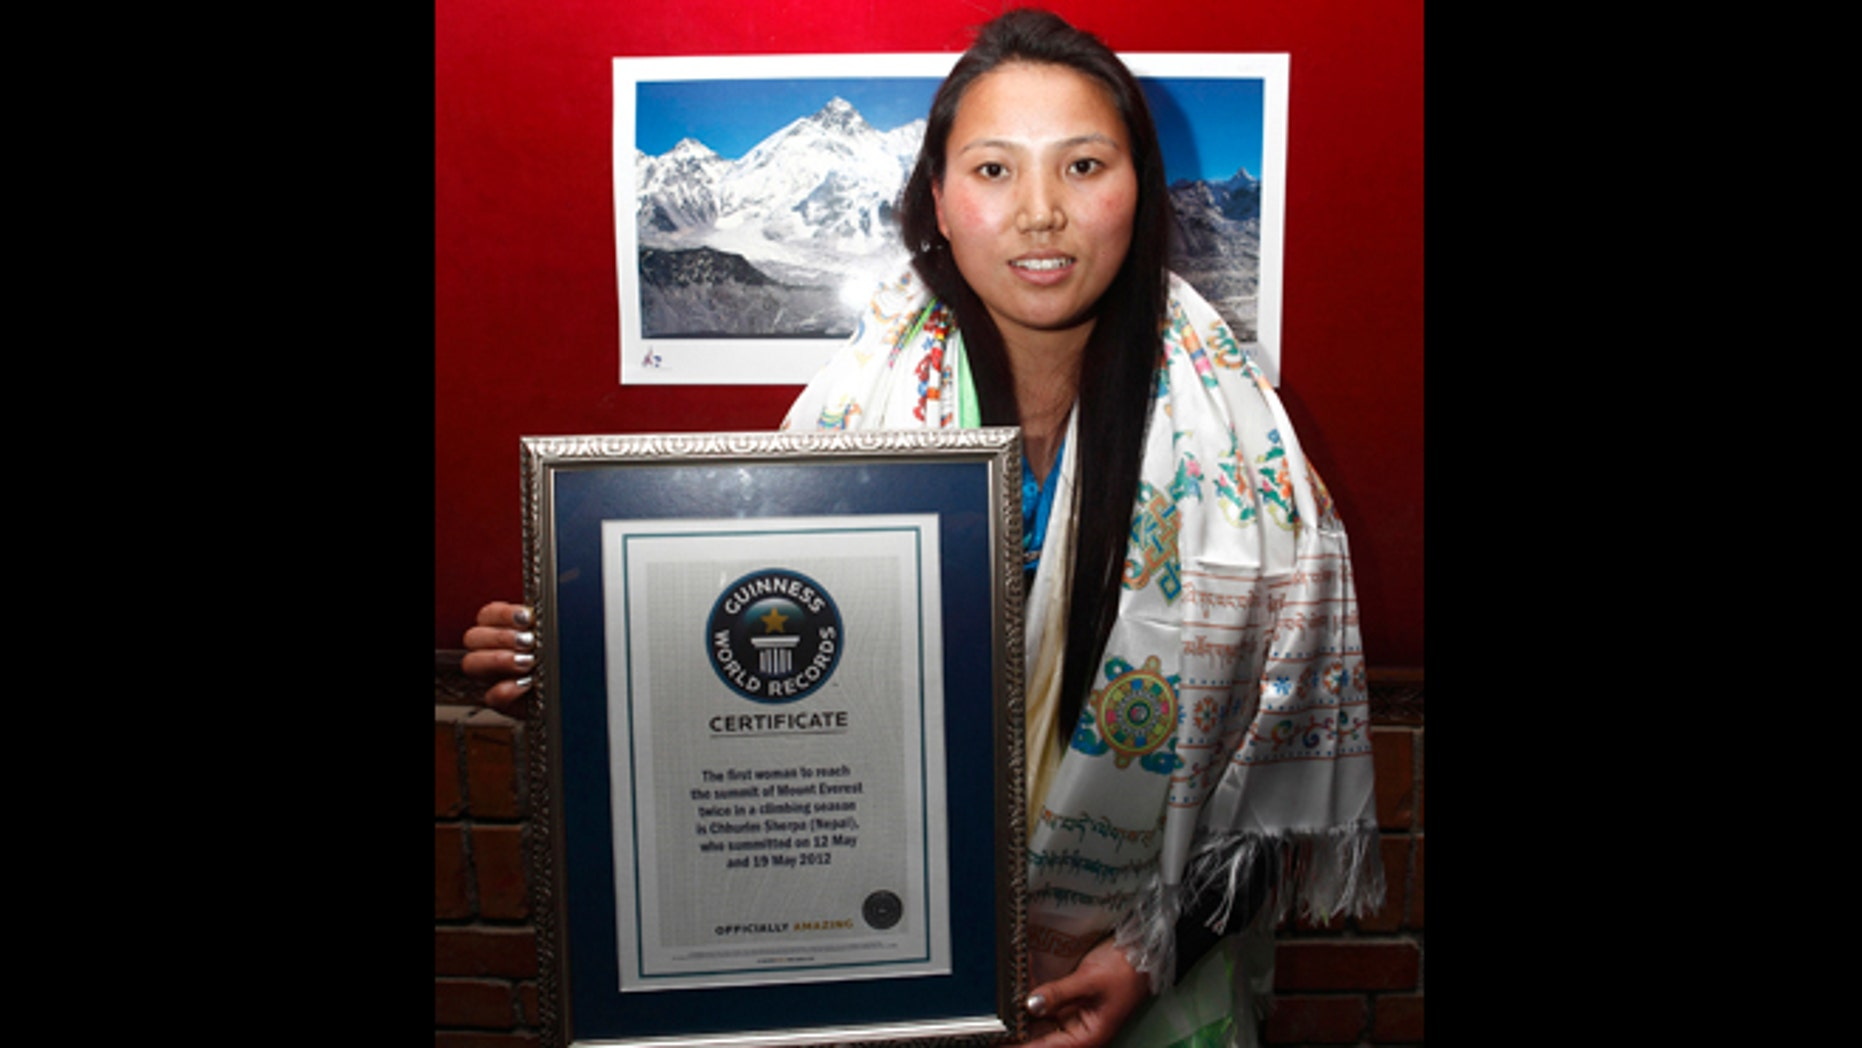 Feb. 25, 2013: Nepalese woman mountaineer Chhurim who has been recognized by Guinness World Records for climbing Mount Everest twice in the same climbing season poses with the certificate issued to her in Katmandu, Nepal.